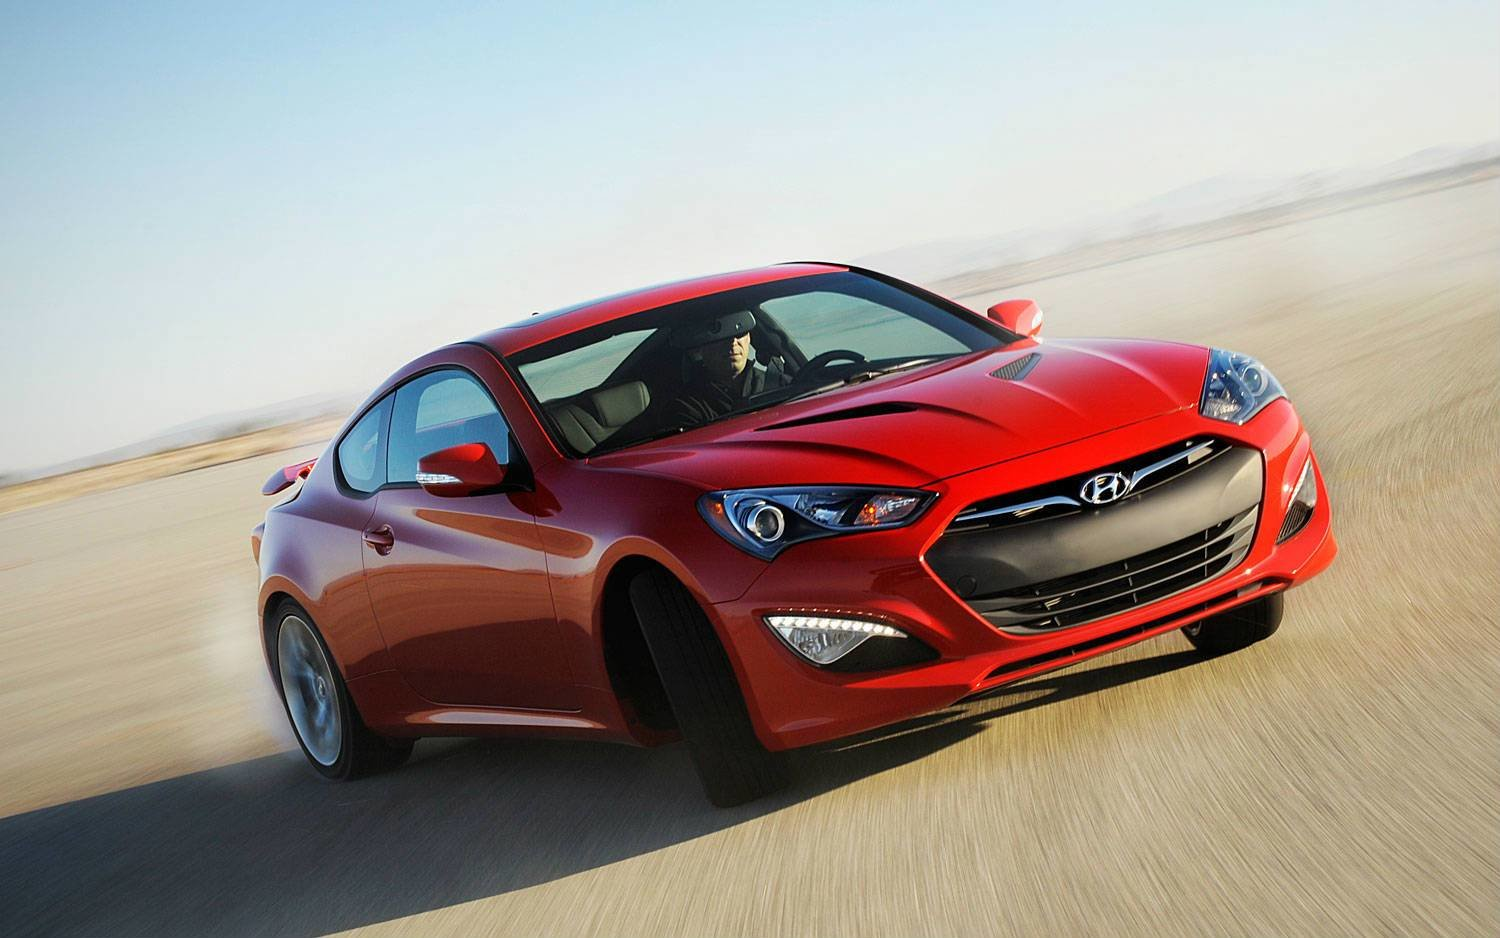 Latest 5 Second Sports Car For Less Than 30 000 Hyundai Genesis Free Download